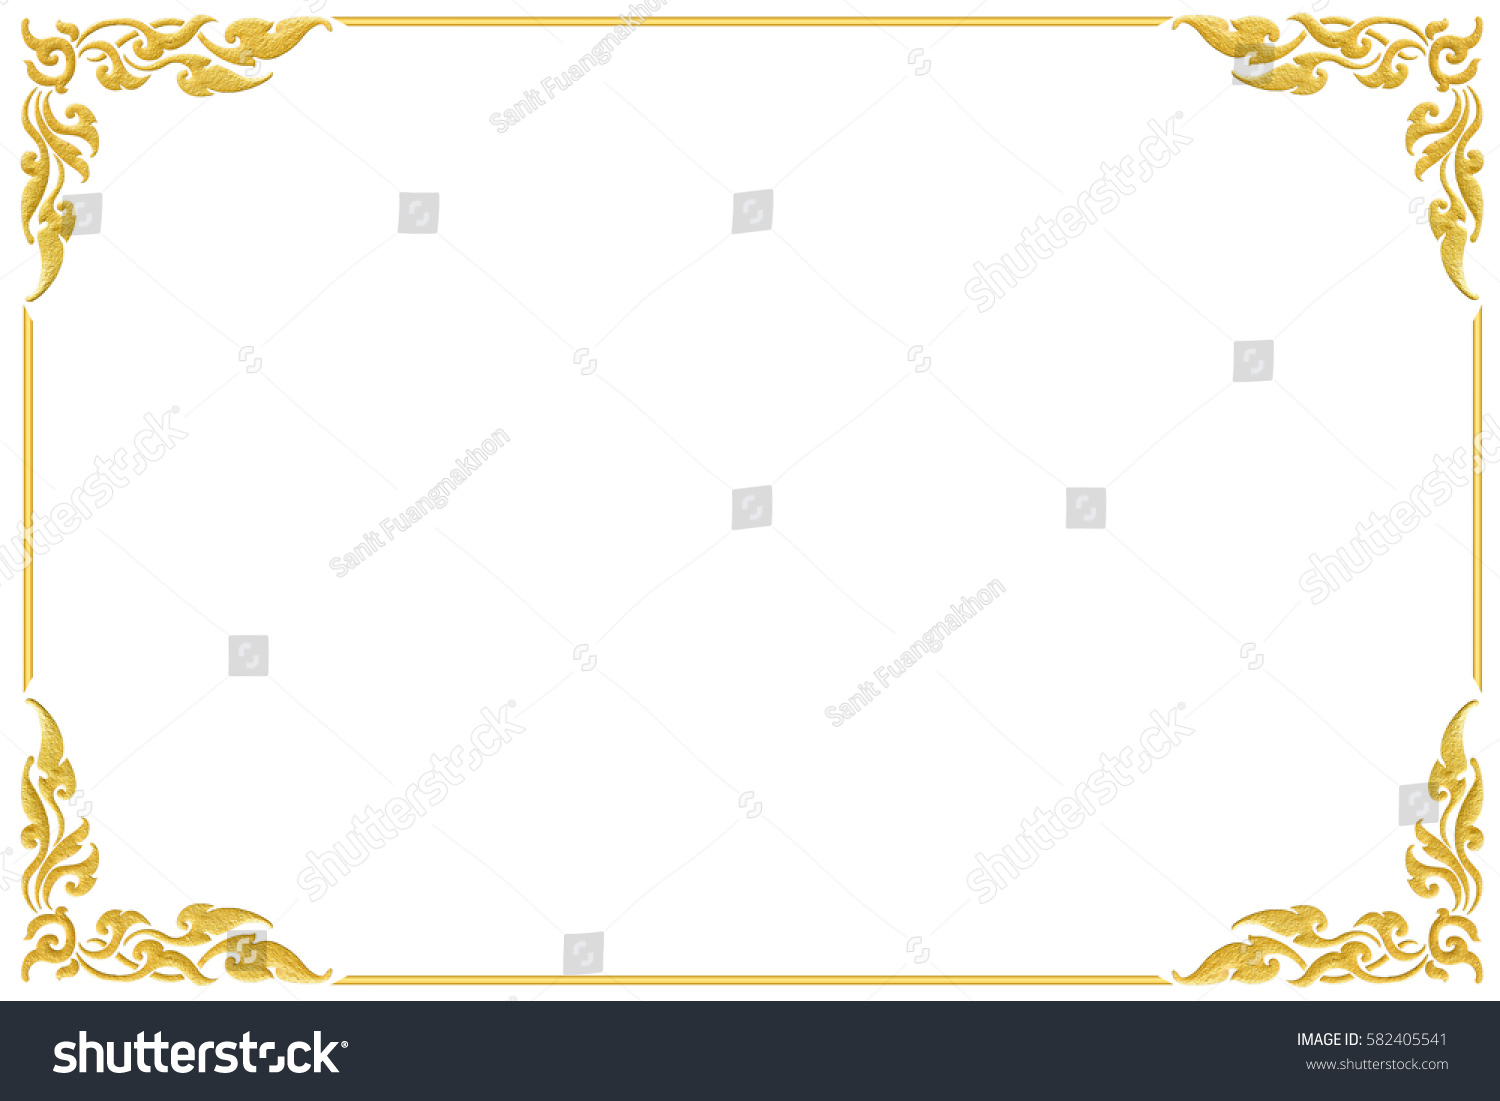 7fc6716cc9e Art frame corner golden design isolated on white background. This has  clipping path.